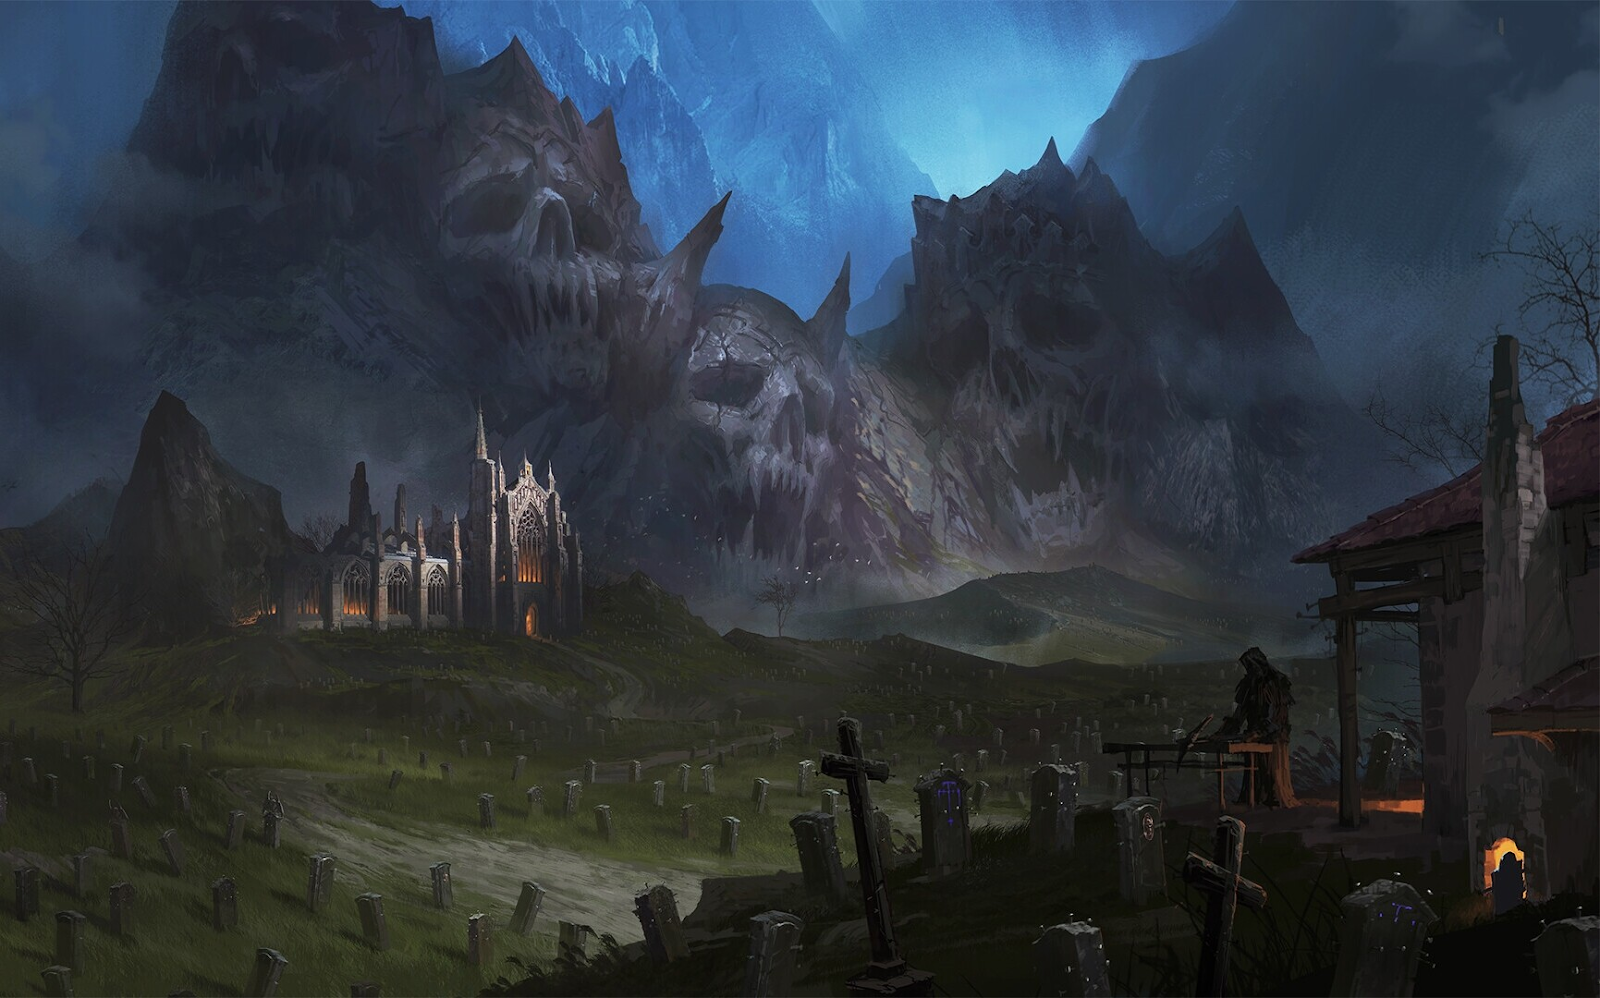 Fantasy Wallpaper - Grave Keeper by Avant Choi